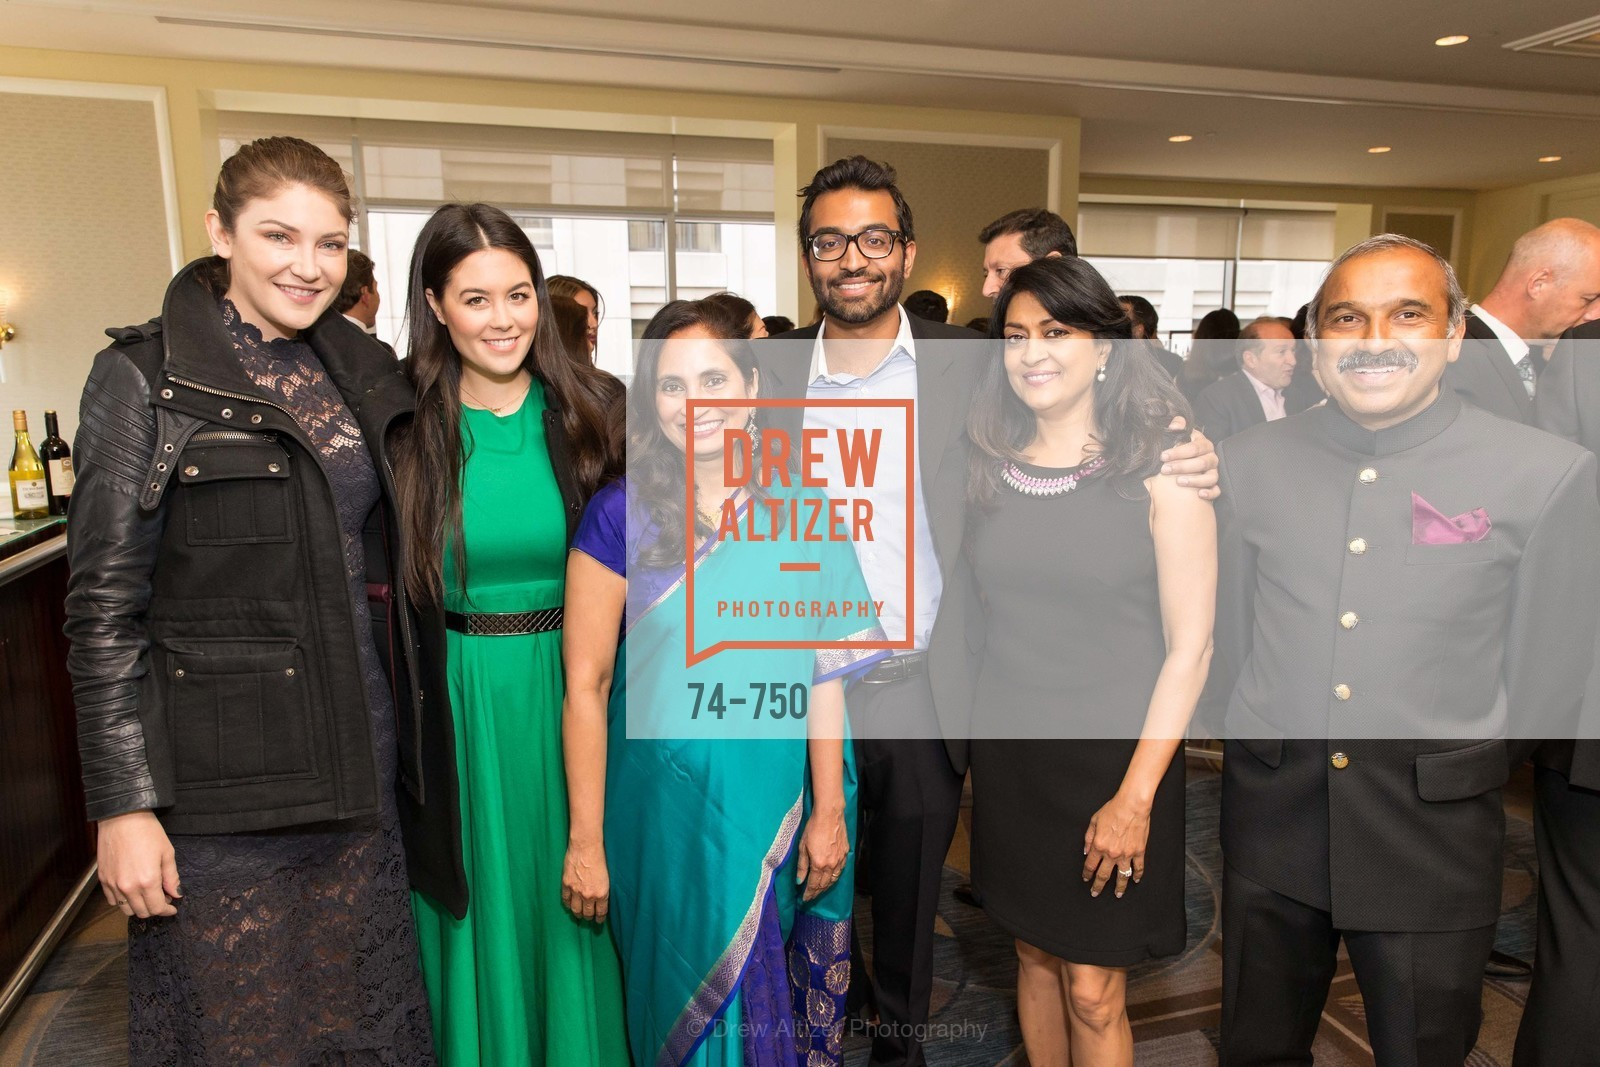 Melody McCloskey, Michelle Dong, Padmasree Warrior, Rohan Shah, Lata Krishnan, Mohan Warrier, WORLD AFFAIRS COUNCIL Awards Dinner, US, May 26th, 2015,Drew Altizer, Drew Altizer Photography, full-service agency, private events, San Francisco photographer, photographer california